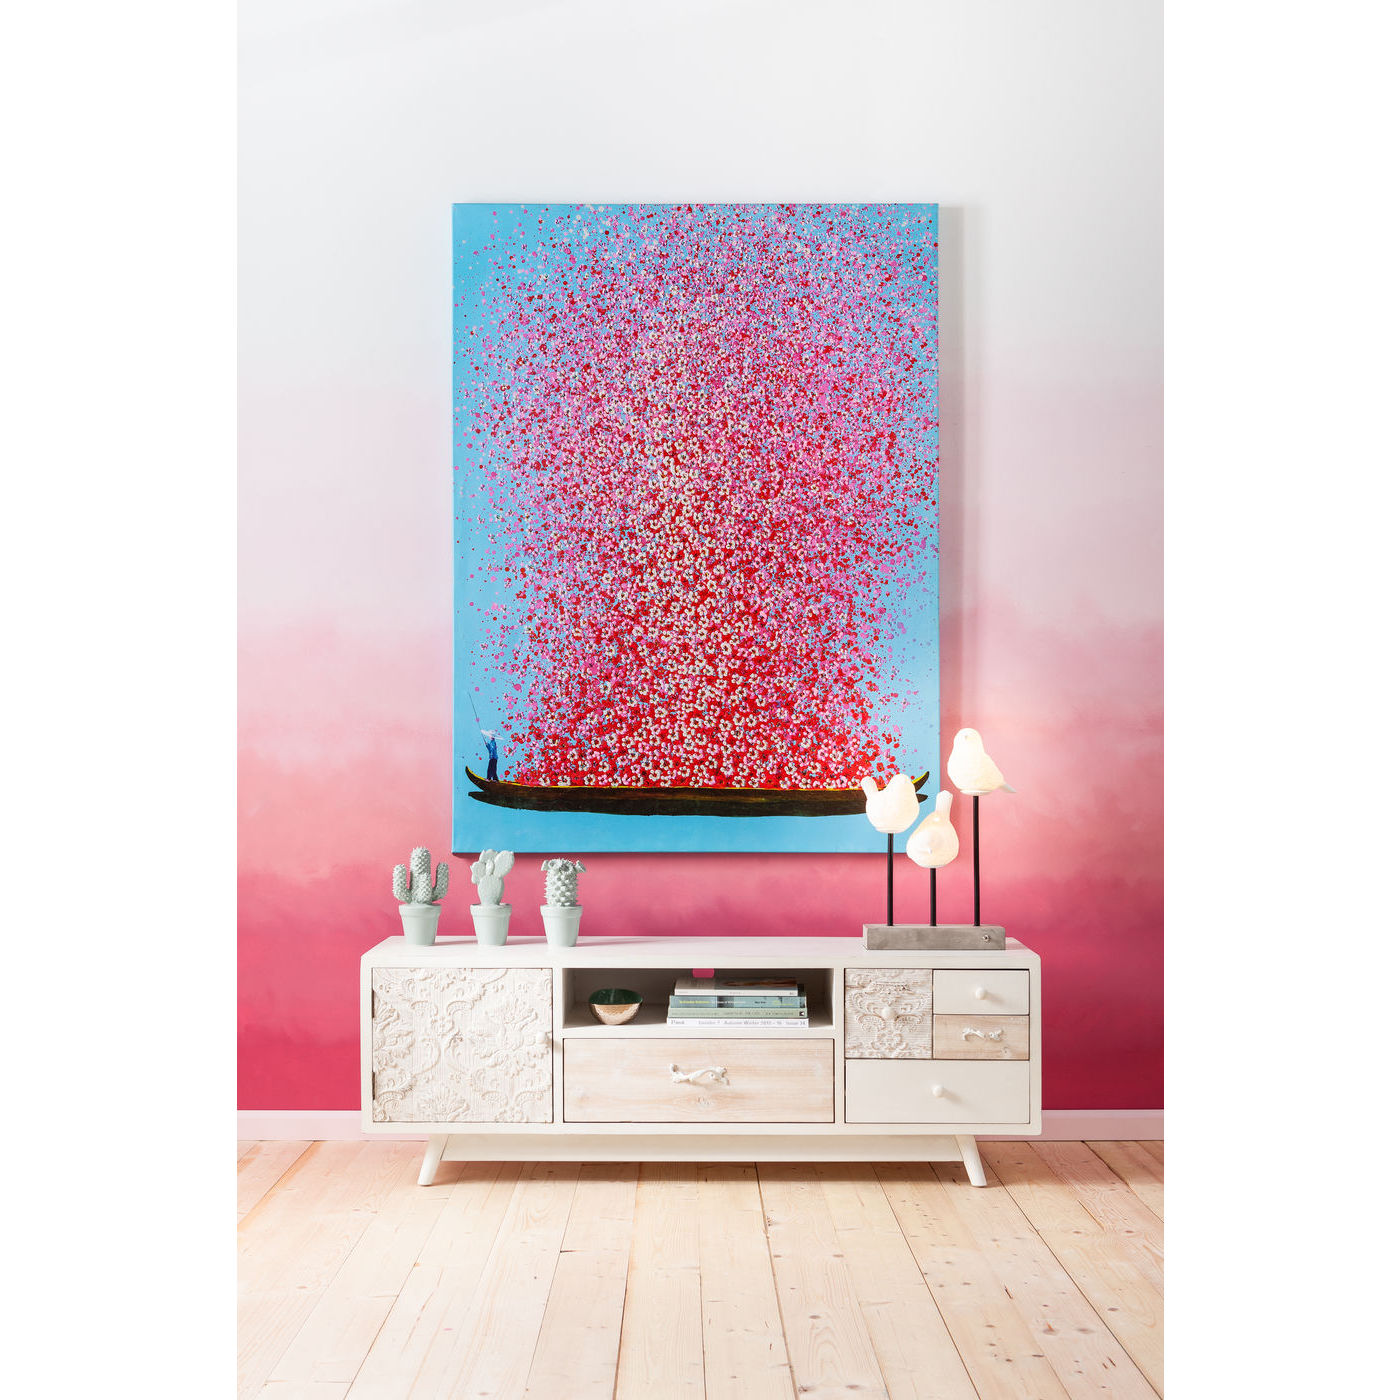 bild gem lde druck kunstdruck lbild leinwand blau rosa bl ten boot neu kare ebay. Black Bedroom Furniture Sets. Home Design Ideas